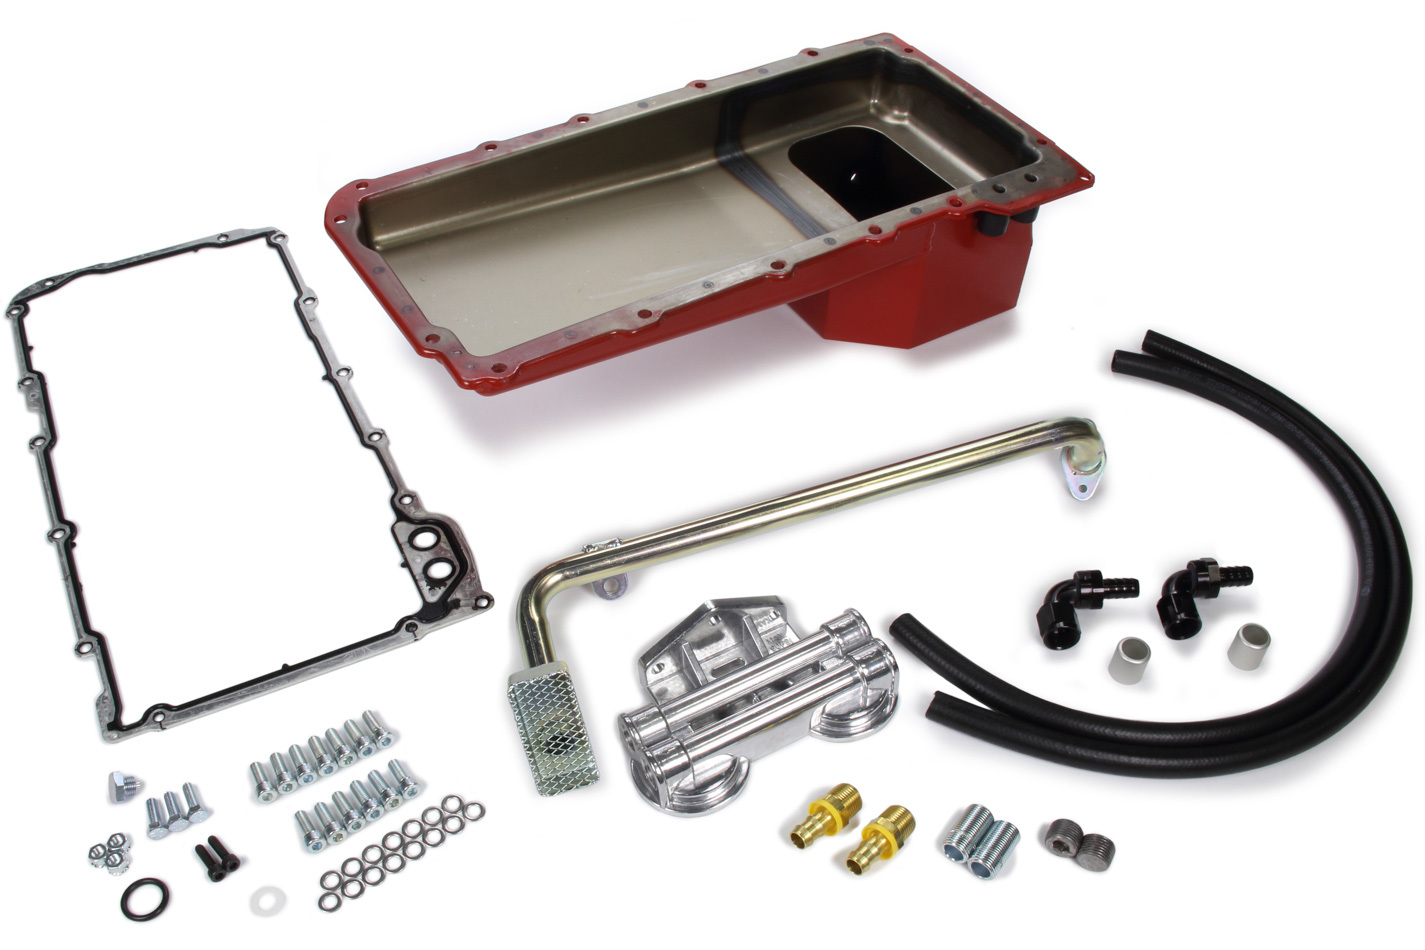 Trans Dapt 177 Engine Oil Pan Kit, Fabricated, Rear Sump, 5 qt, 6 in Deep, Double Filter, Horizontal Port, Gasket / Hardware / Oil Filter Relocation System / Pickup, Steel, Red Paint, GM LS-Series, GM F-Body 1967-69, Kit